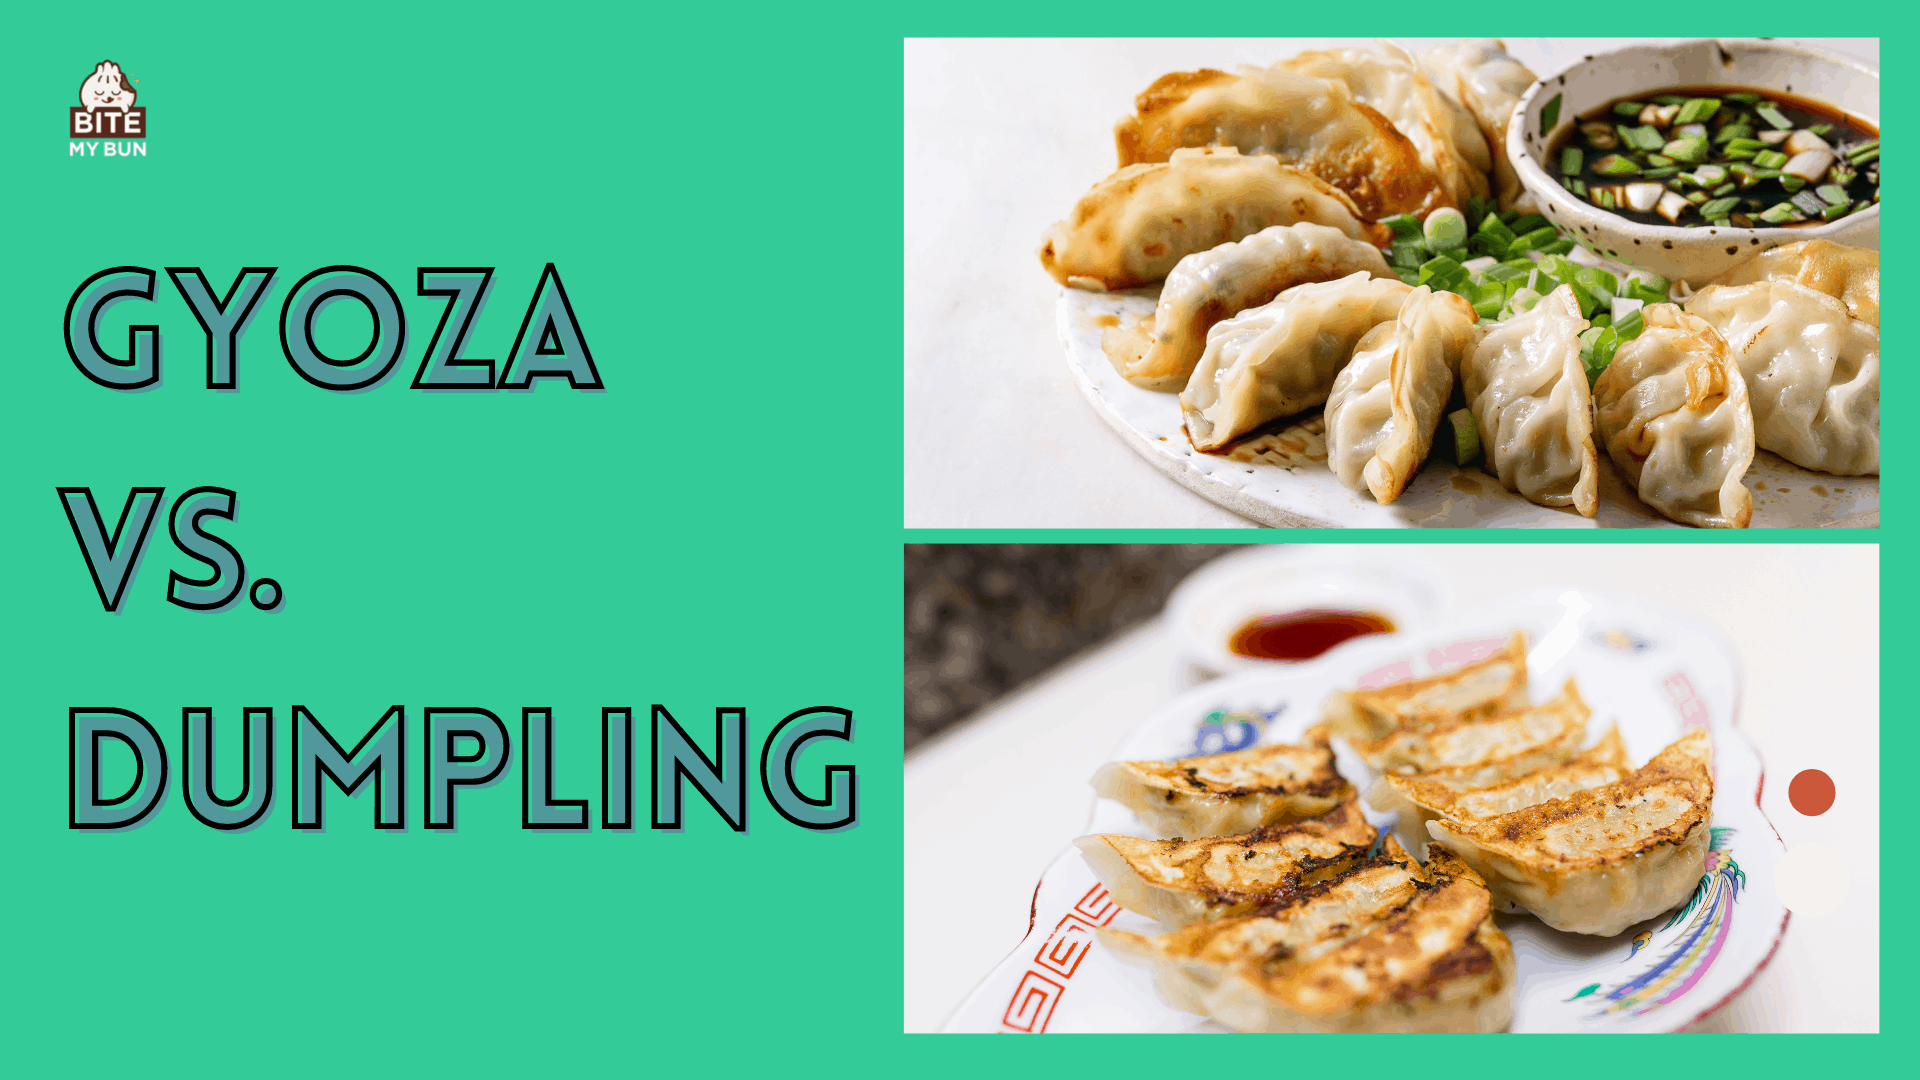 Gyoza vs dumpling what is the difference?